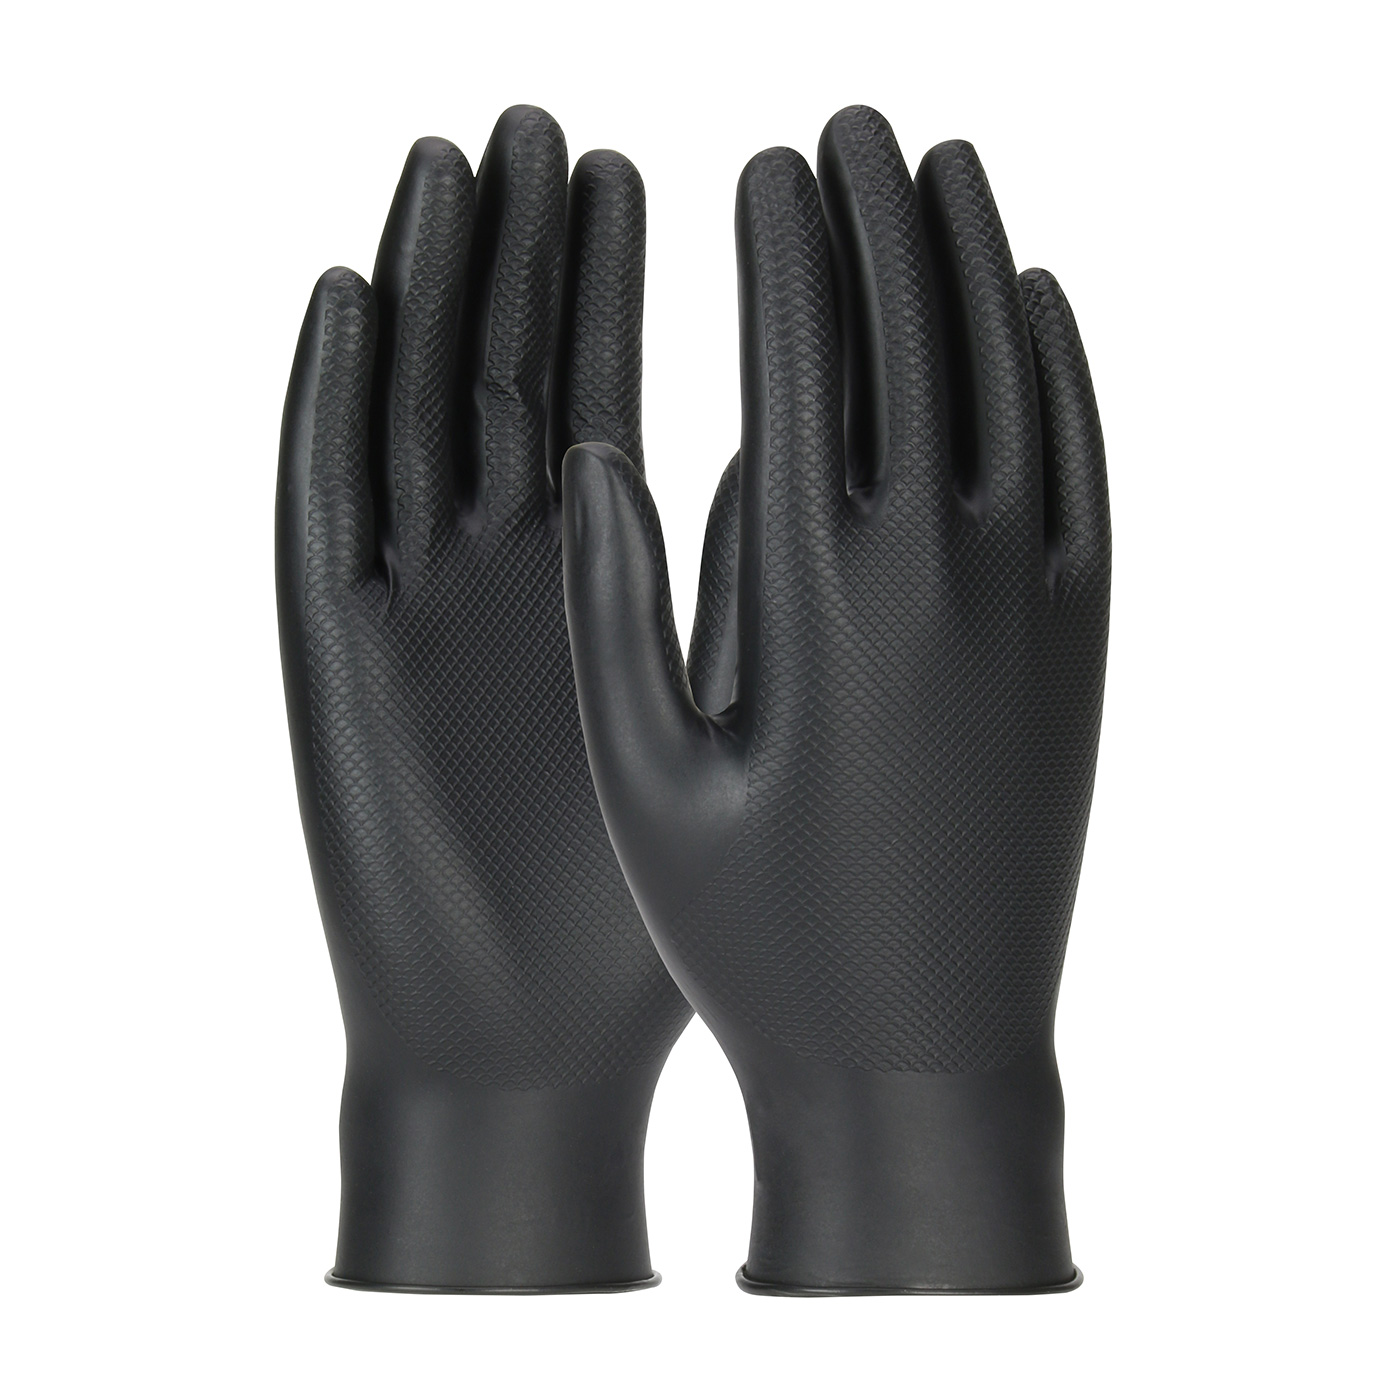 PIPR 67-246/L Superior Ambidextrous Nitrile Glove with Textured Fish Scale Grip - 6 Mil (box of 50 gloves)